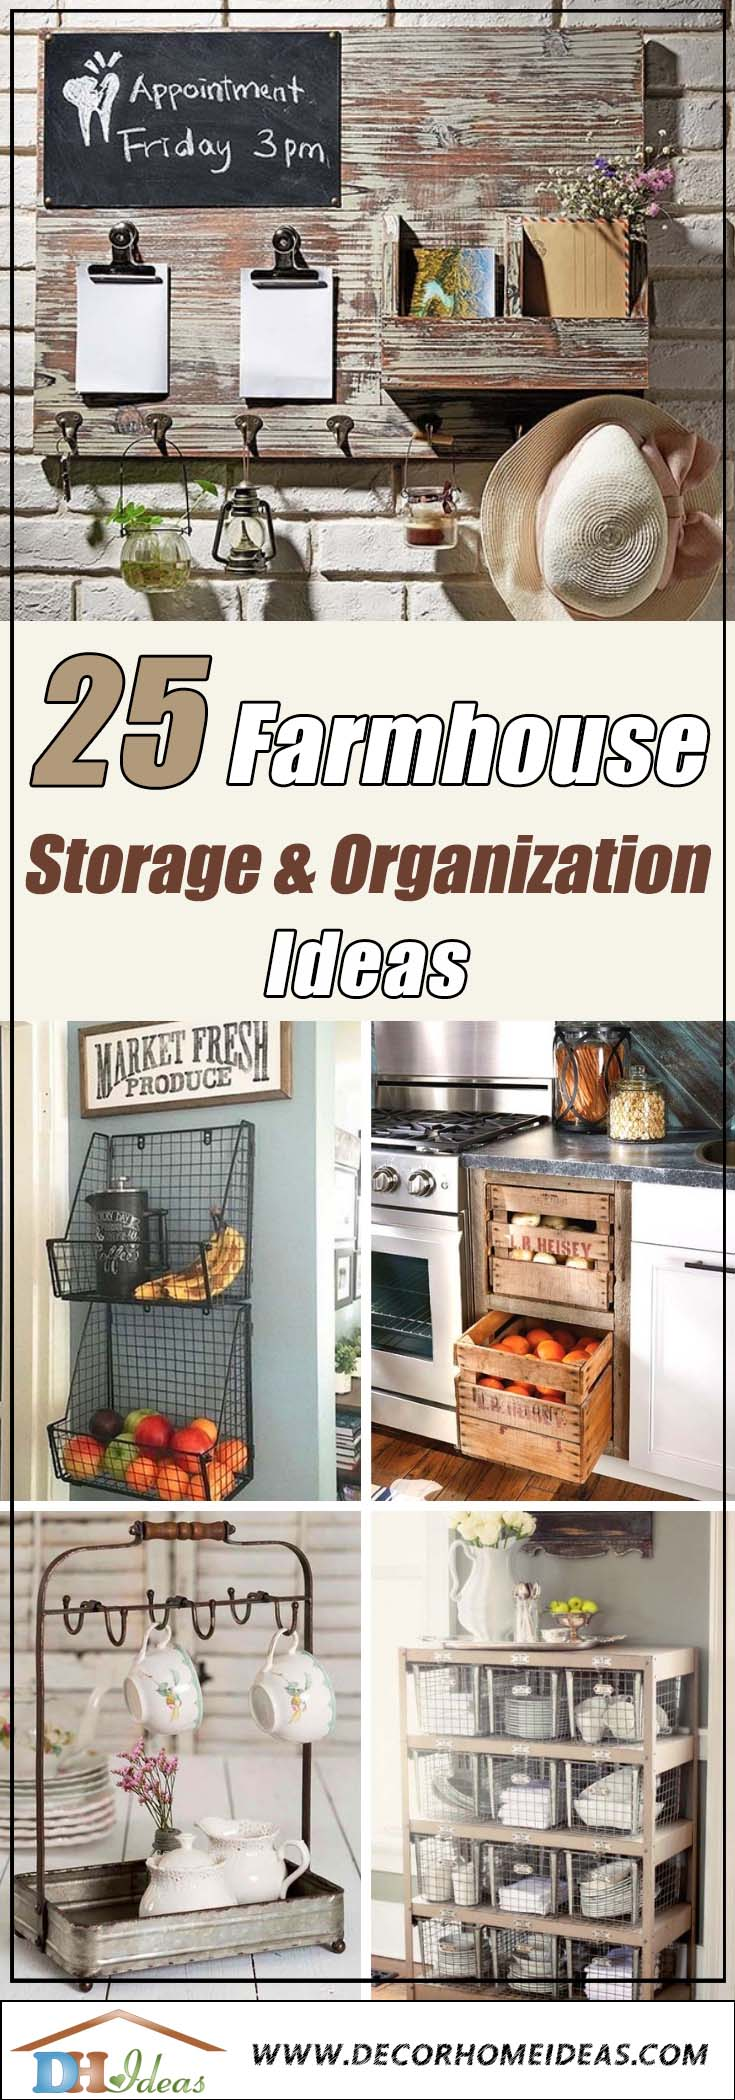 25 Farmhouse Kitchen Storage Organization Ideas #farmhouse #farmhousedecor #storage #organization #farmhousestorage #decorhomeideas